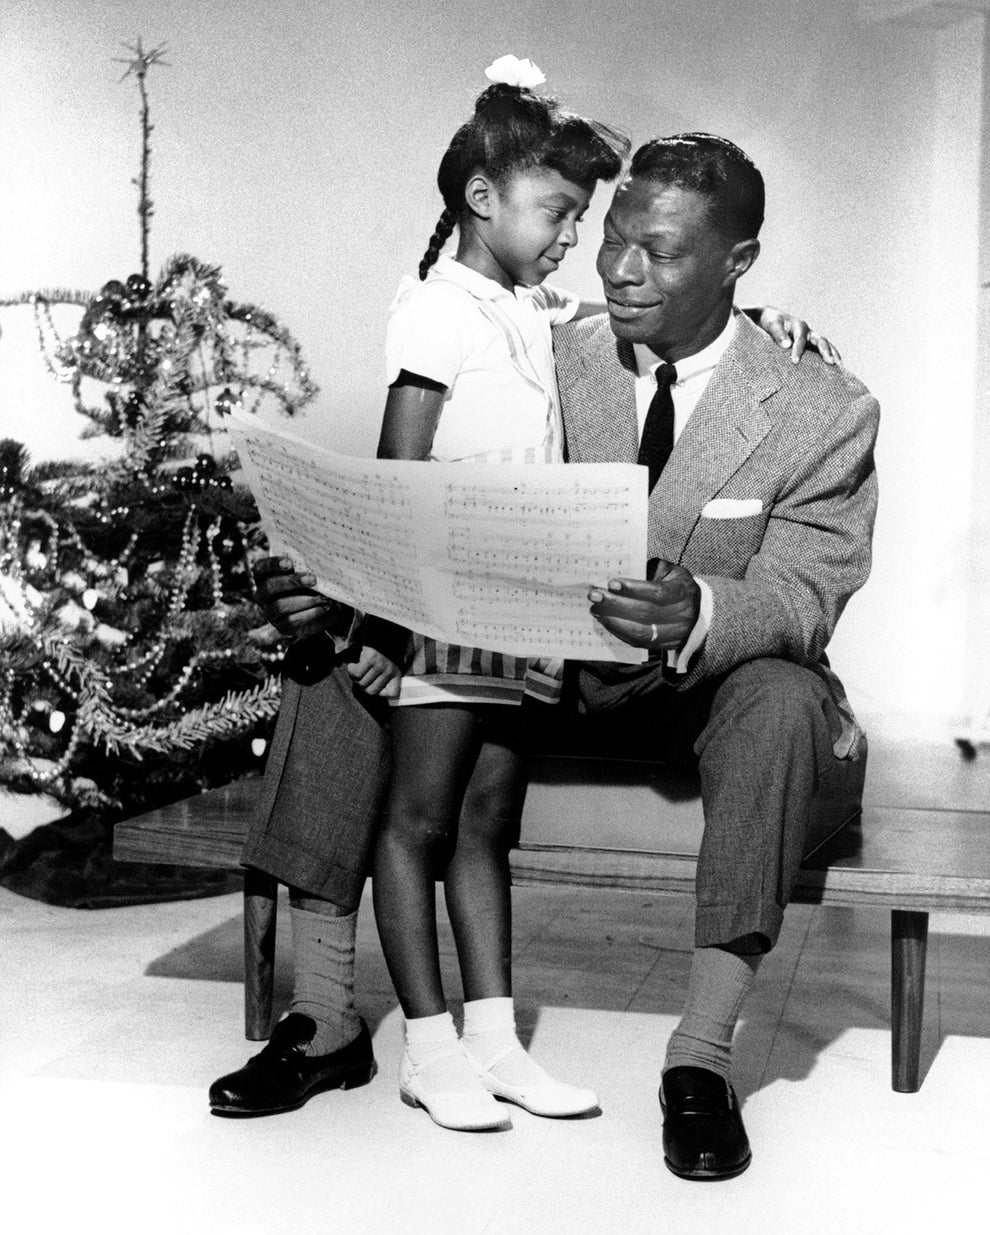 Nat King Cole sharing a tender holiday moment with his daughter Natalie in 1955.